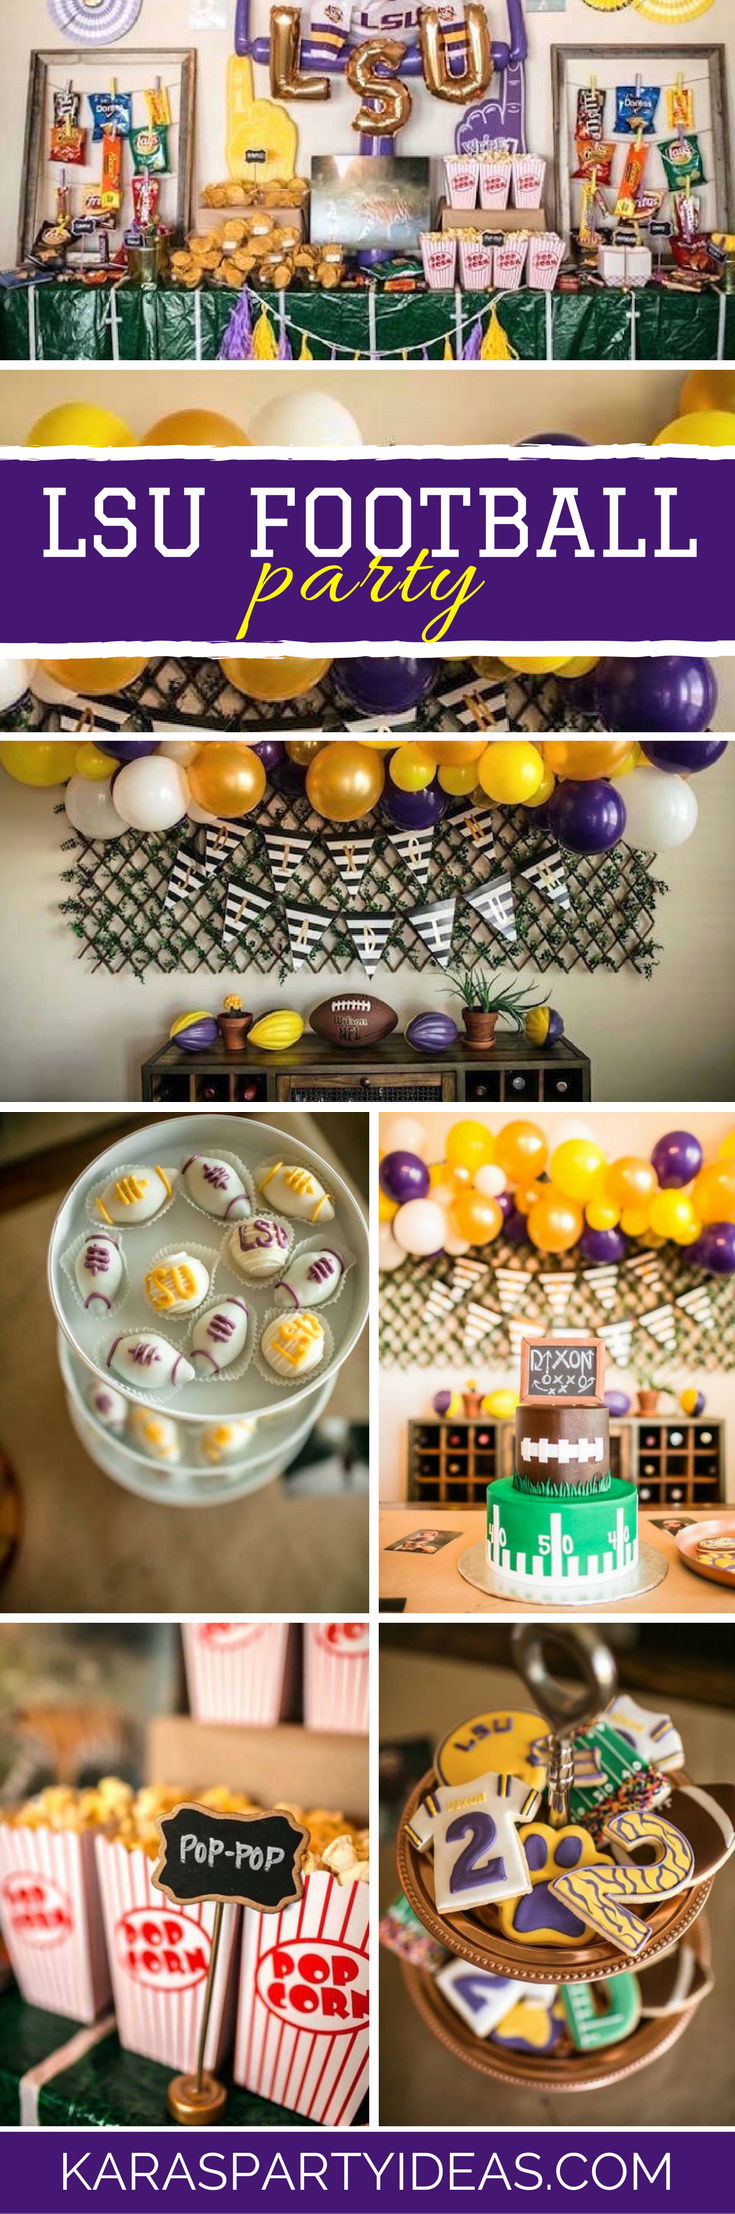 Kara's Party Ideas Lsu Football Party  Kara's Party Ideas. Dining Room Serving Table. Home Media Room. Target Dining Room Table. Discount Room Decor. Decorative Pillow Inserts Wholesale. Lamps For Girl Room. Home Decor Living Room. Shower Steam Room